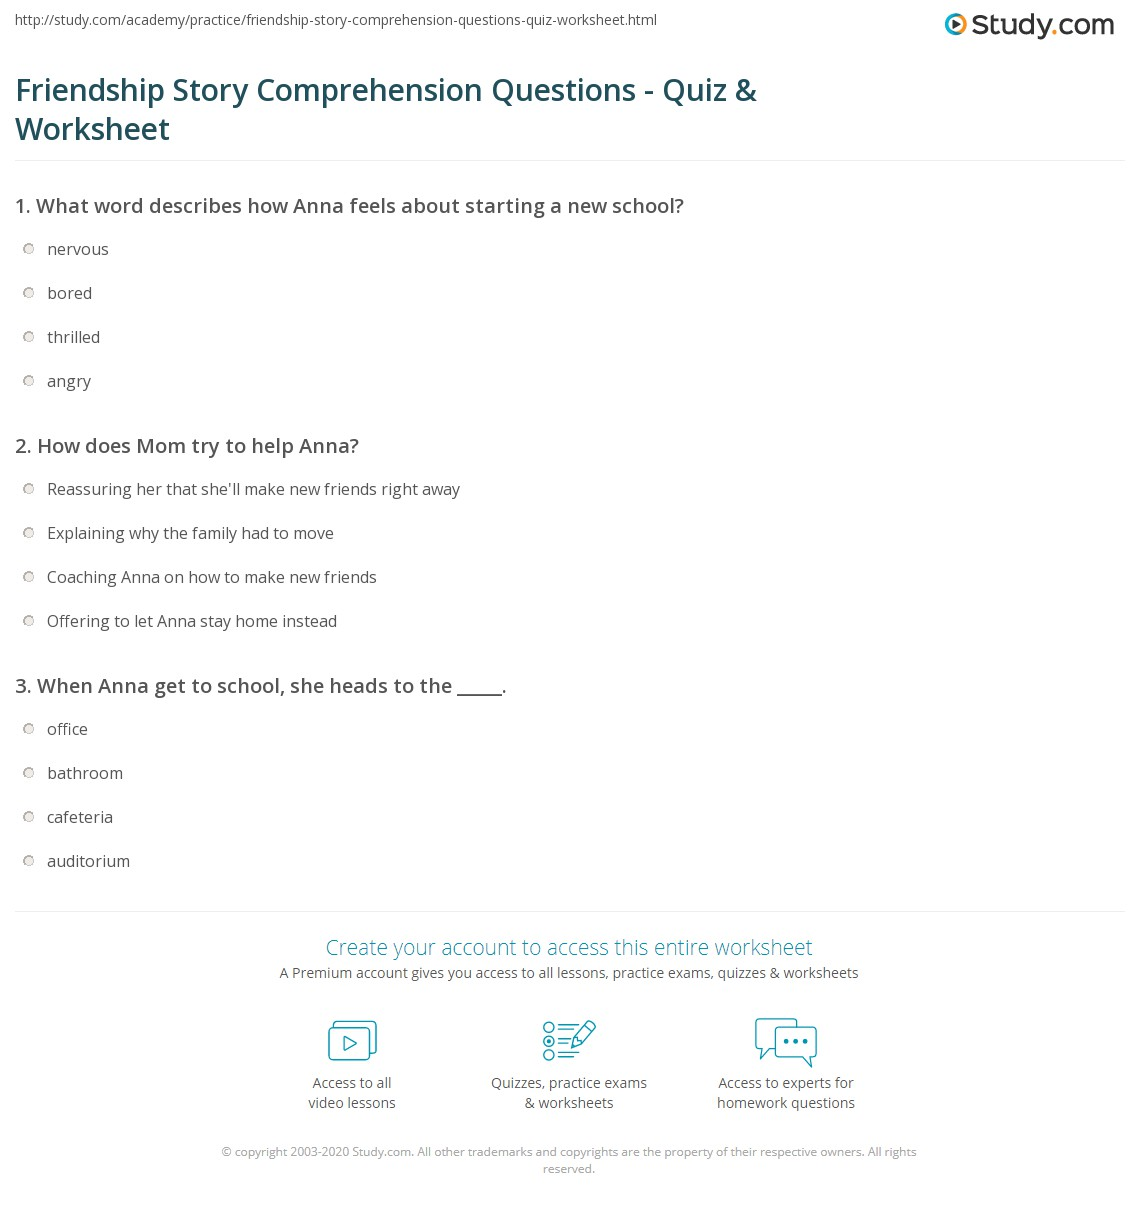 Friendship Story Comprehension Questions